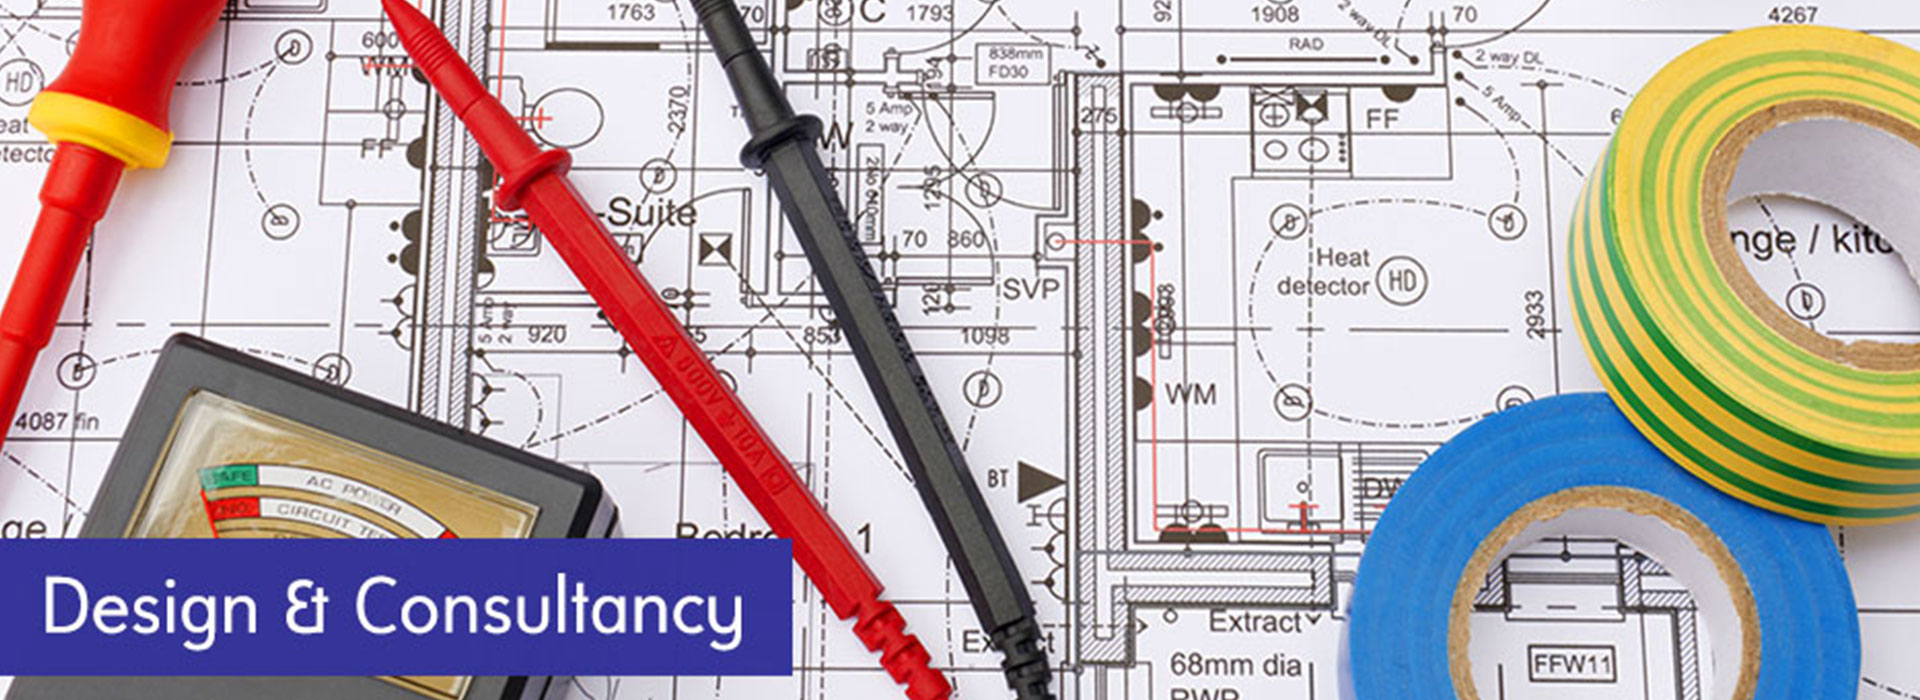 electrical consultants in calicut